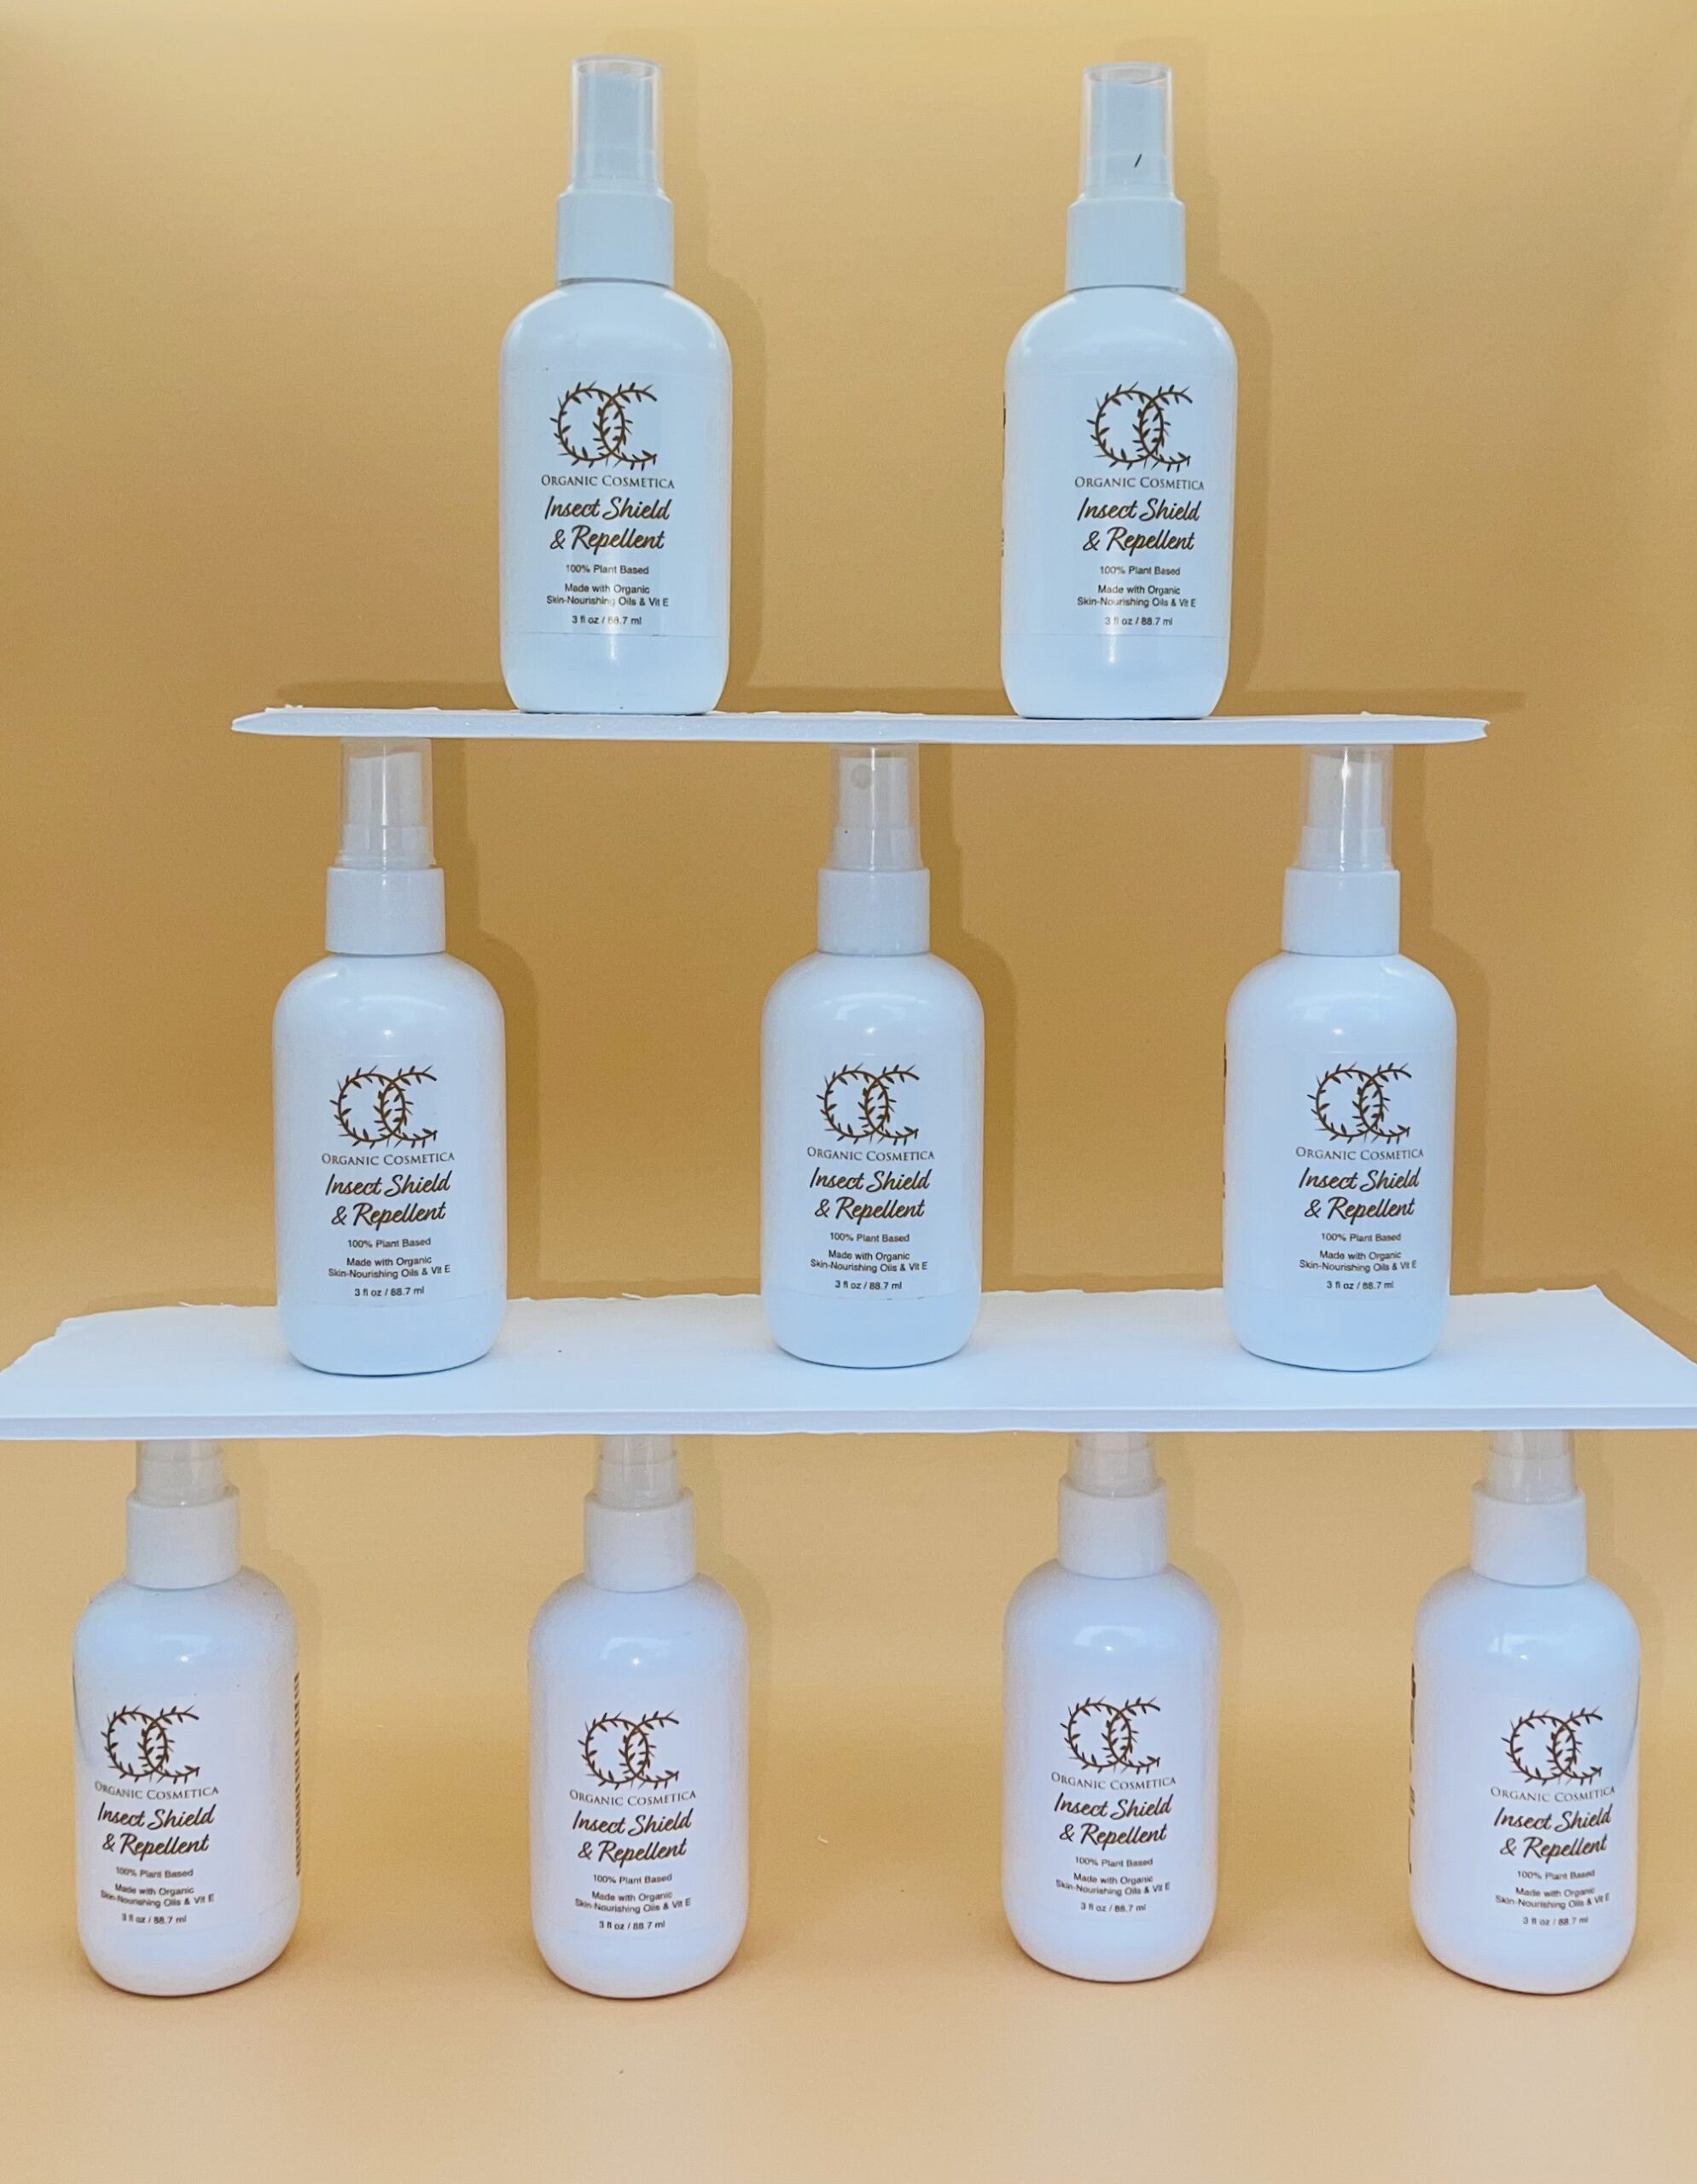 bottles of Moisturizing Organic Insect Repellent